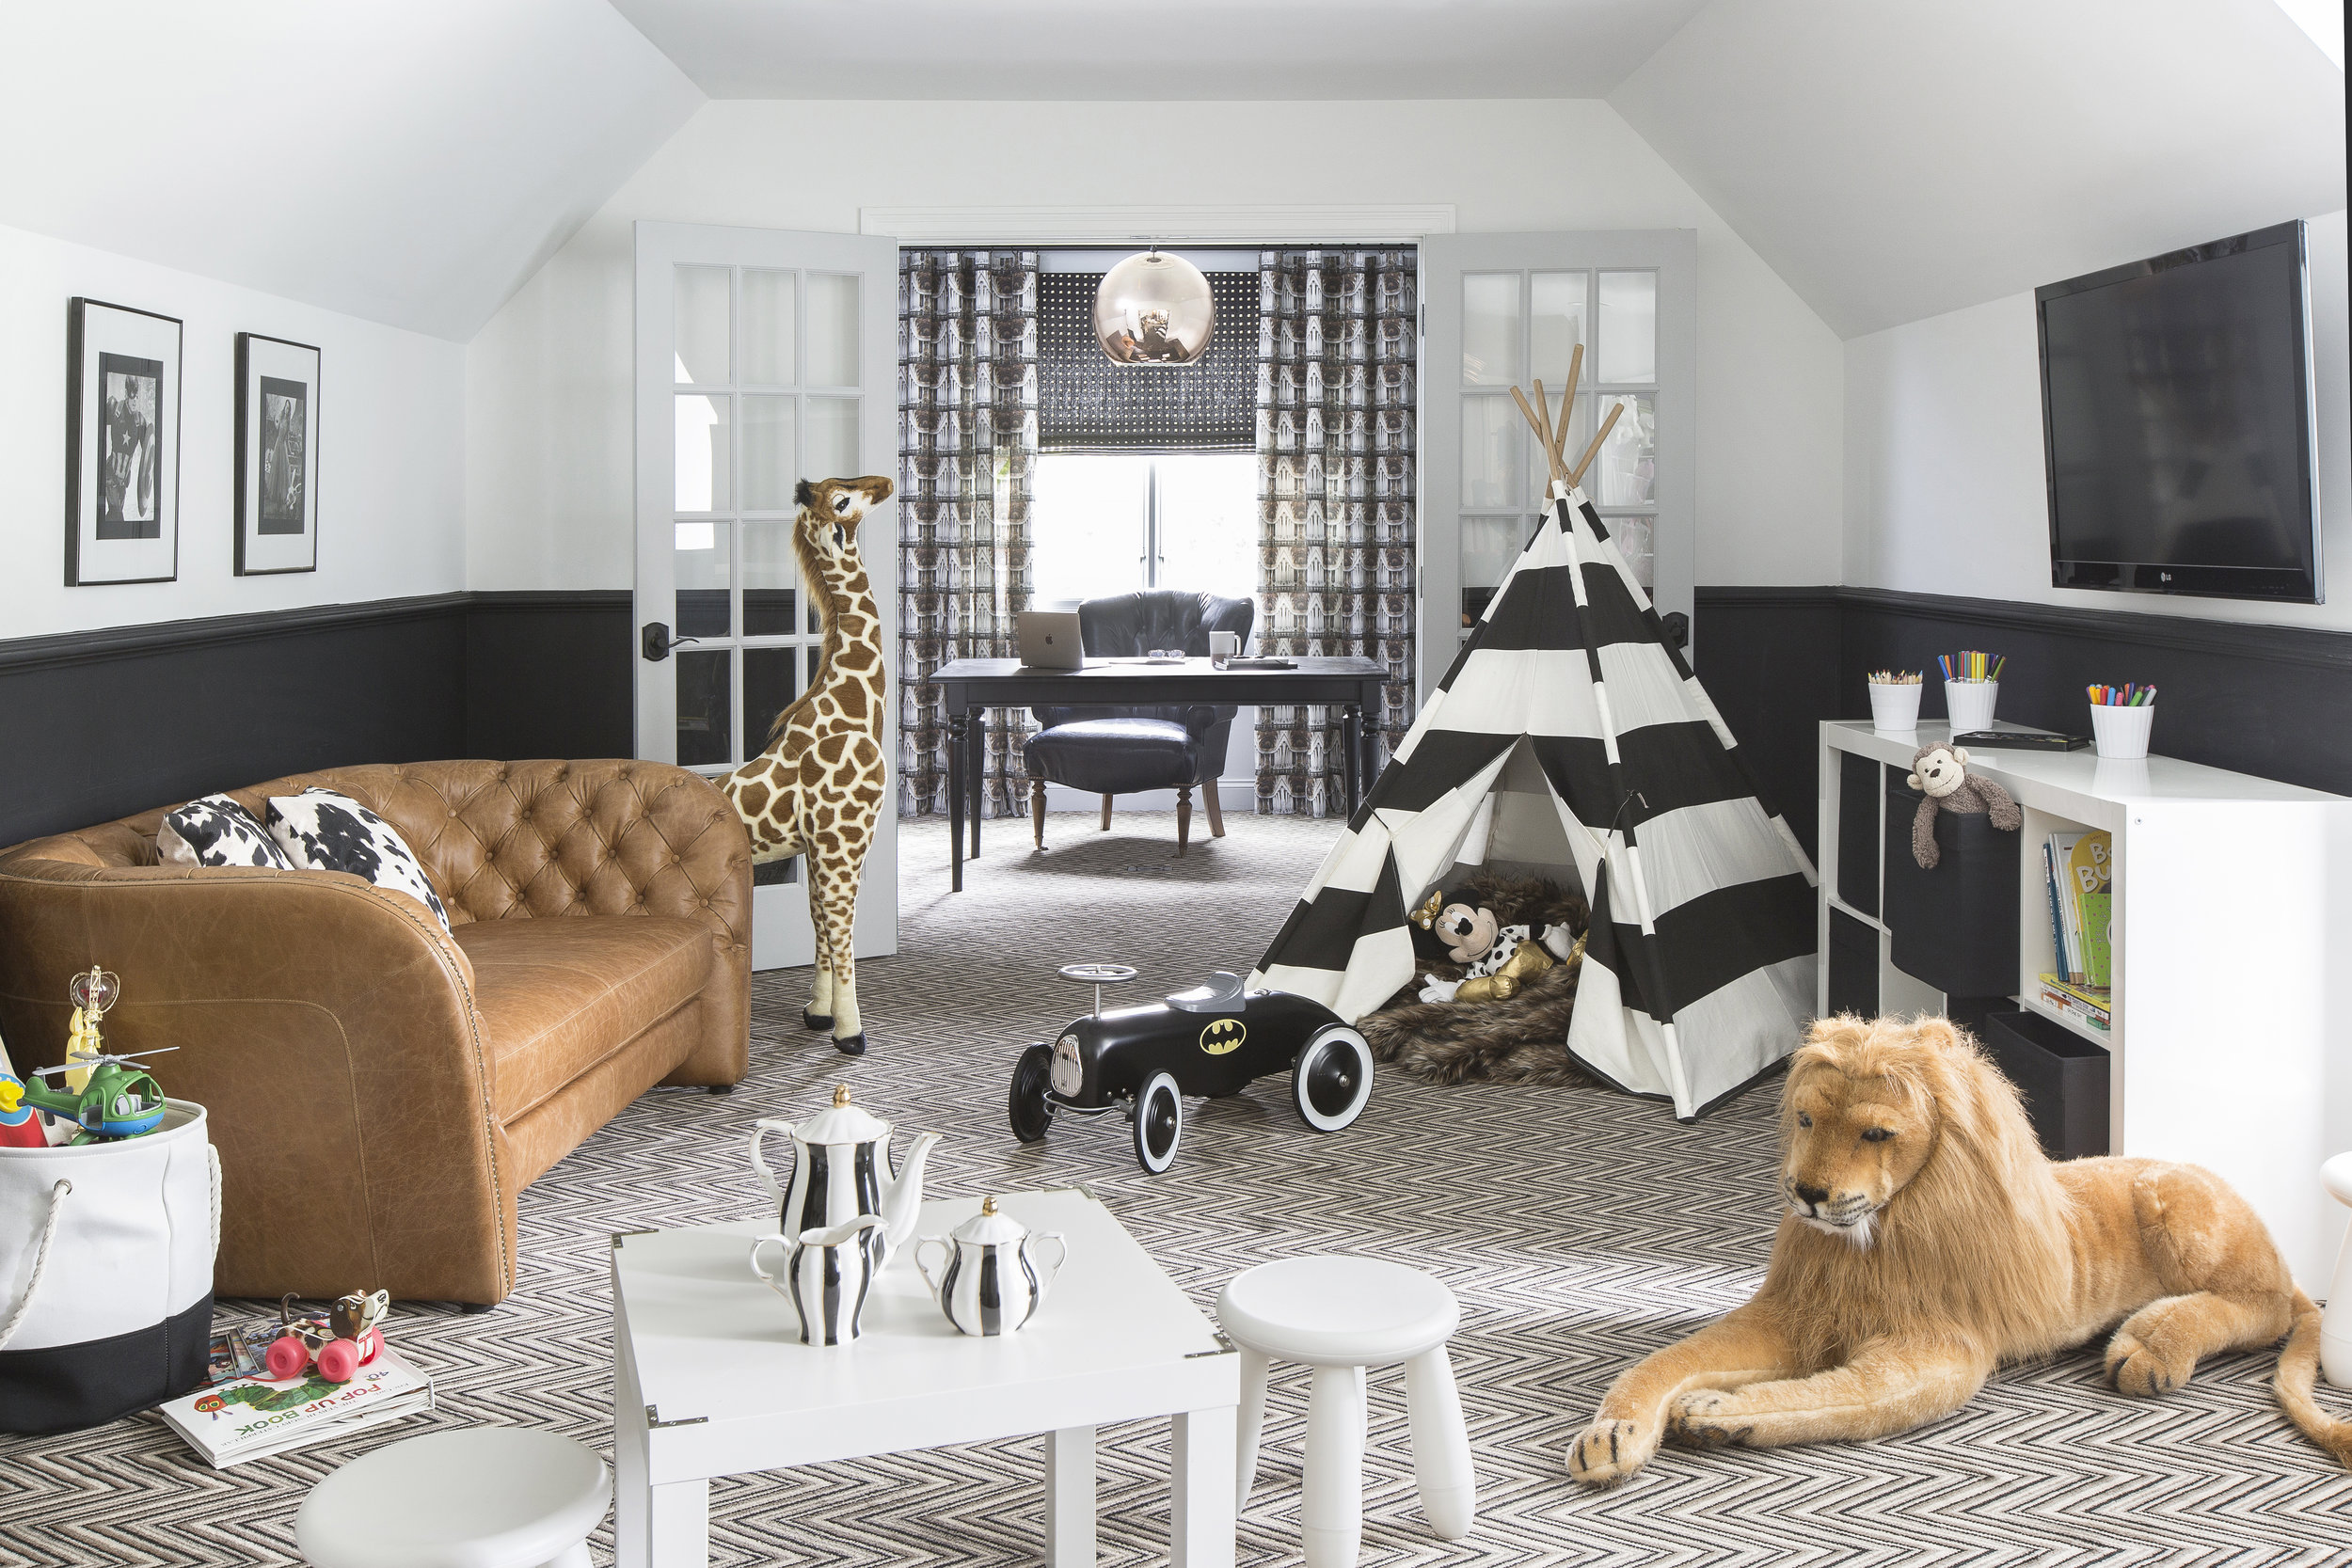 ClaytonRoad024 - playroom.jpg